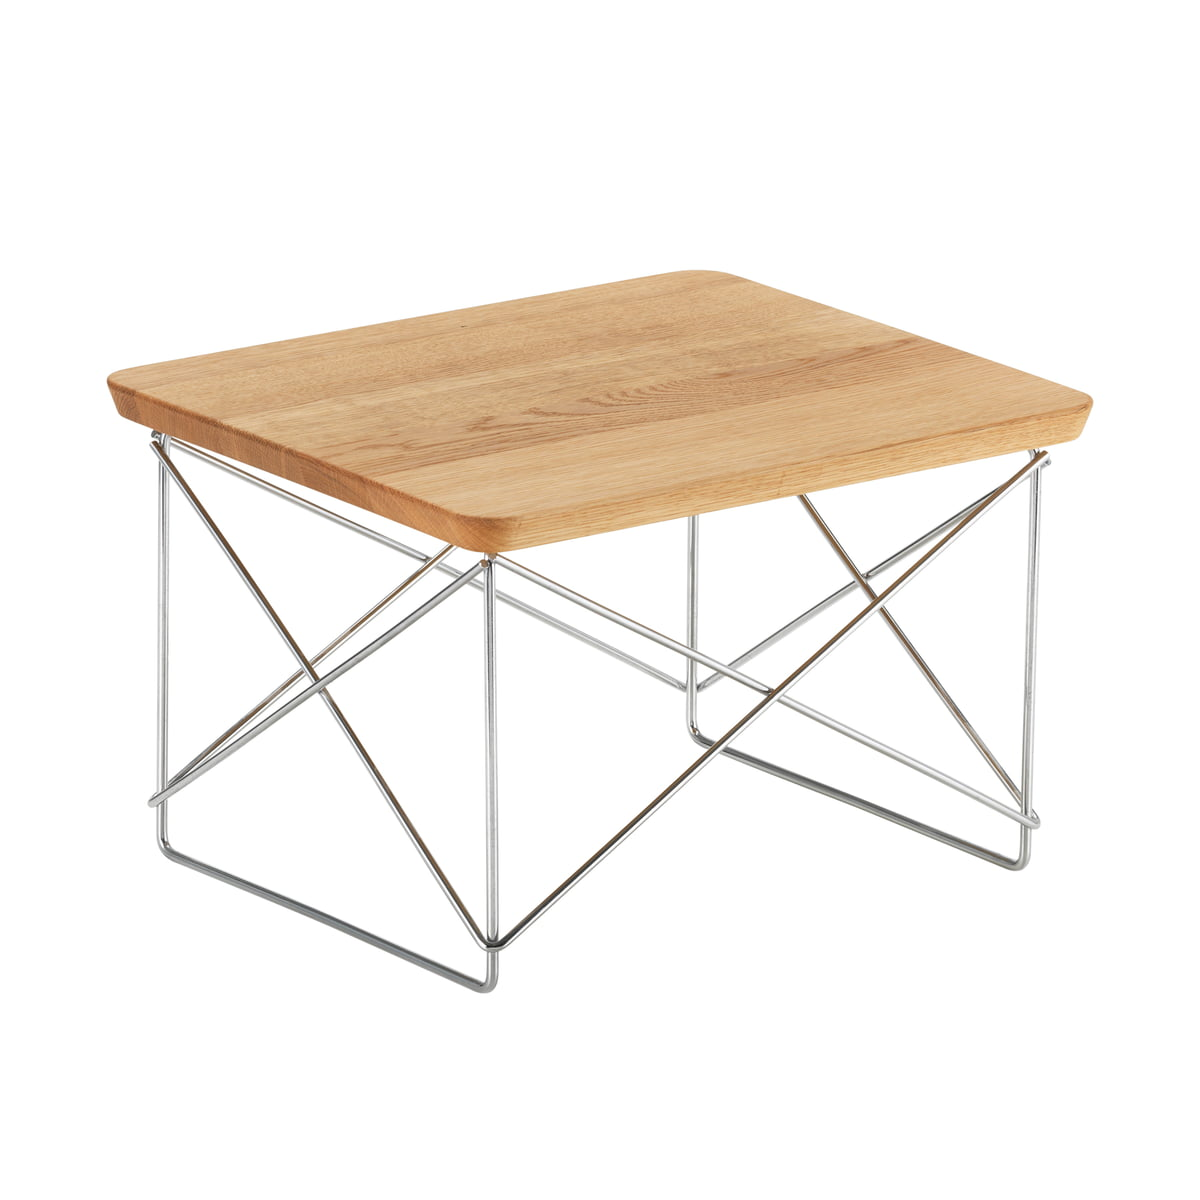 Eames Occasional Table LTR By Vitra In Oak / Chrome